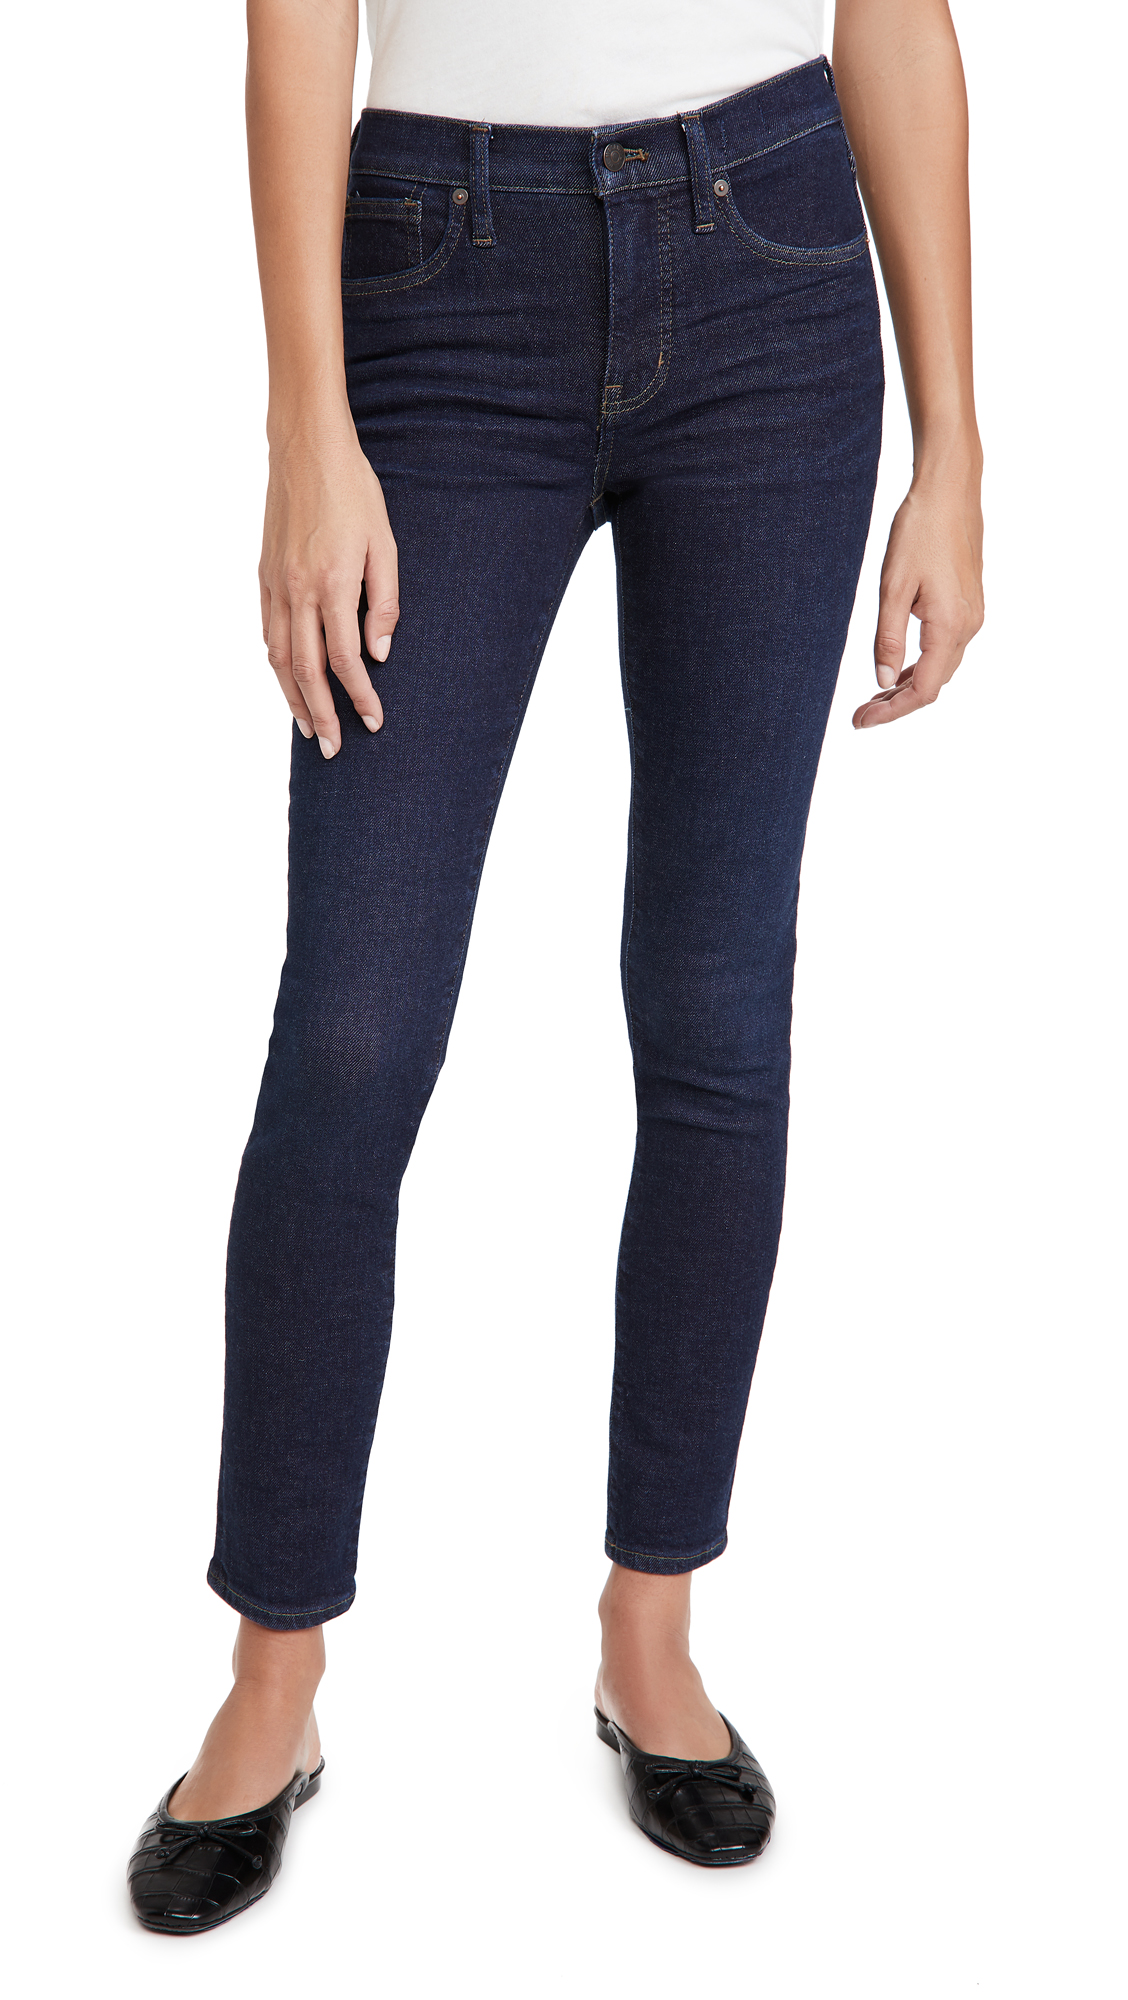 "Madewell 9"" MID RISE JEANS"